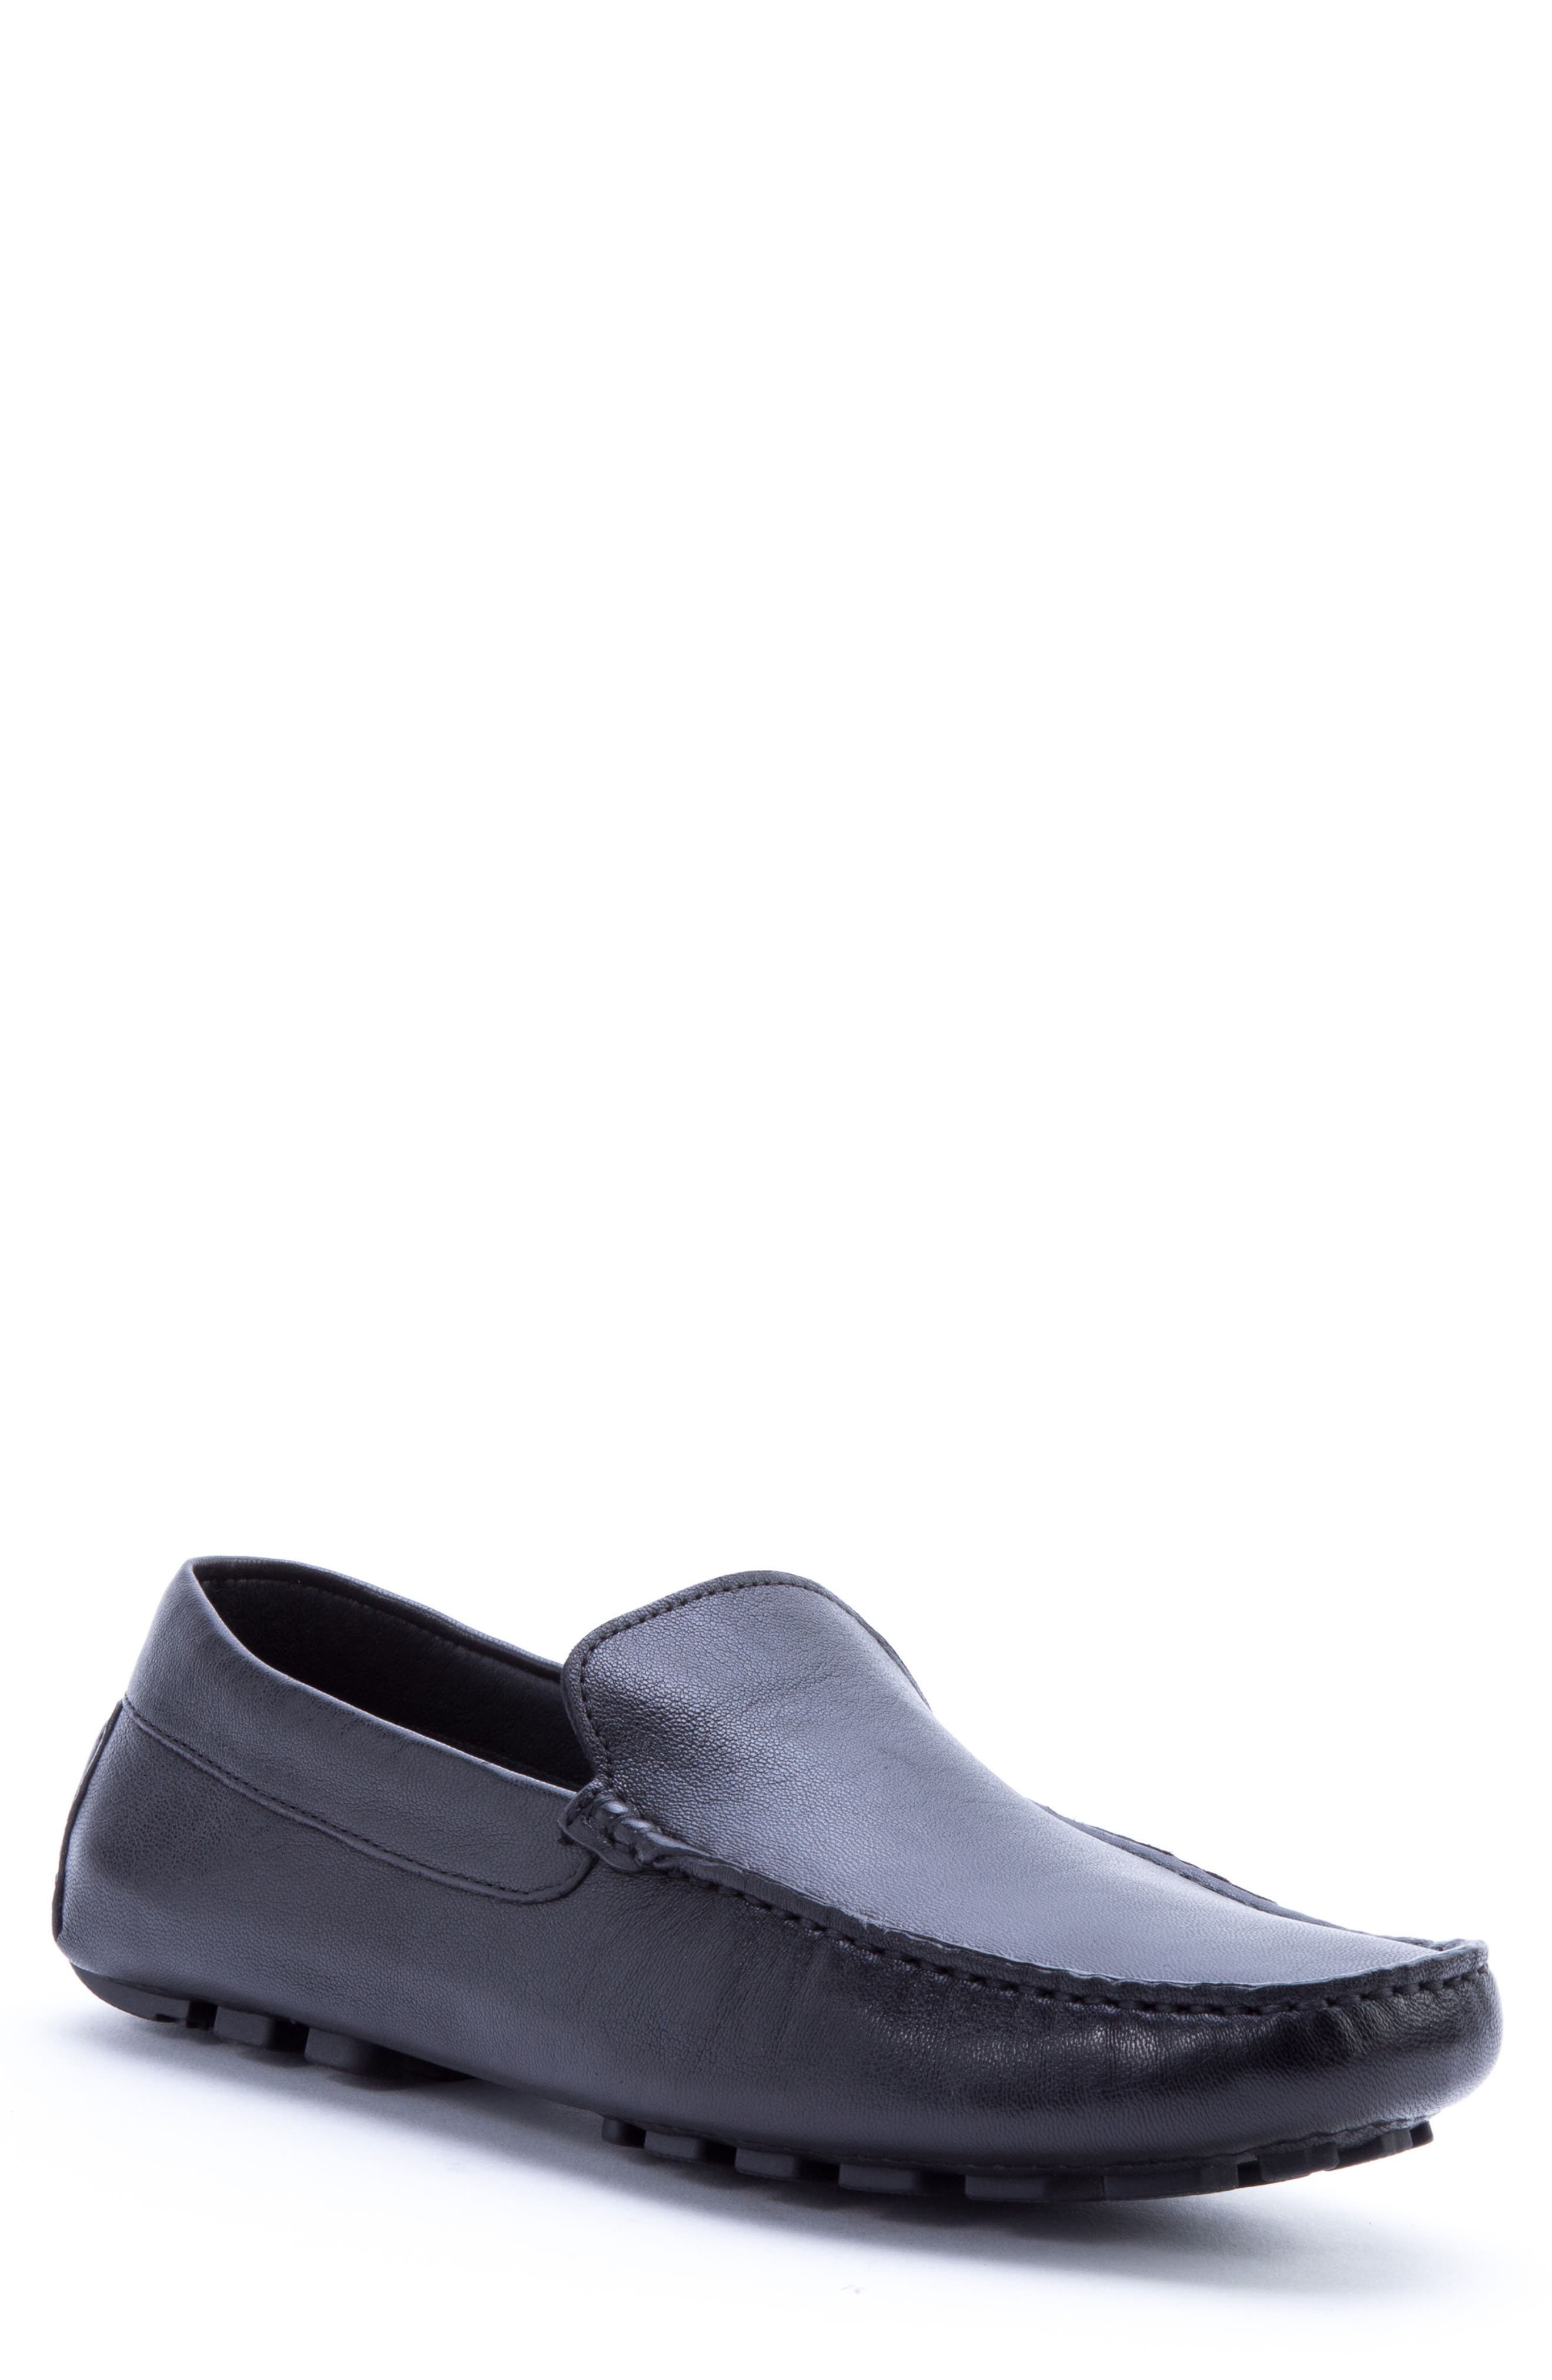 Picasso 3 Moc Toe Driving Loafer,                             Main thumbnail 1, color,                             BLACK LEATHER